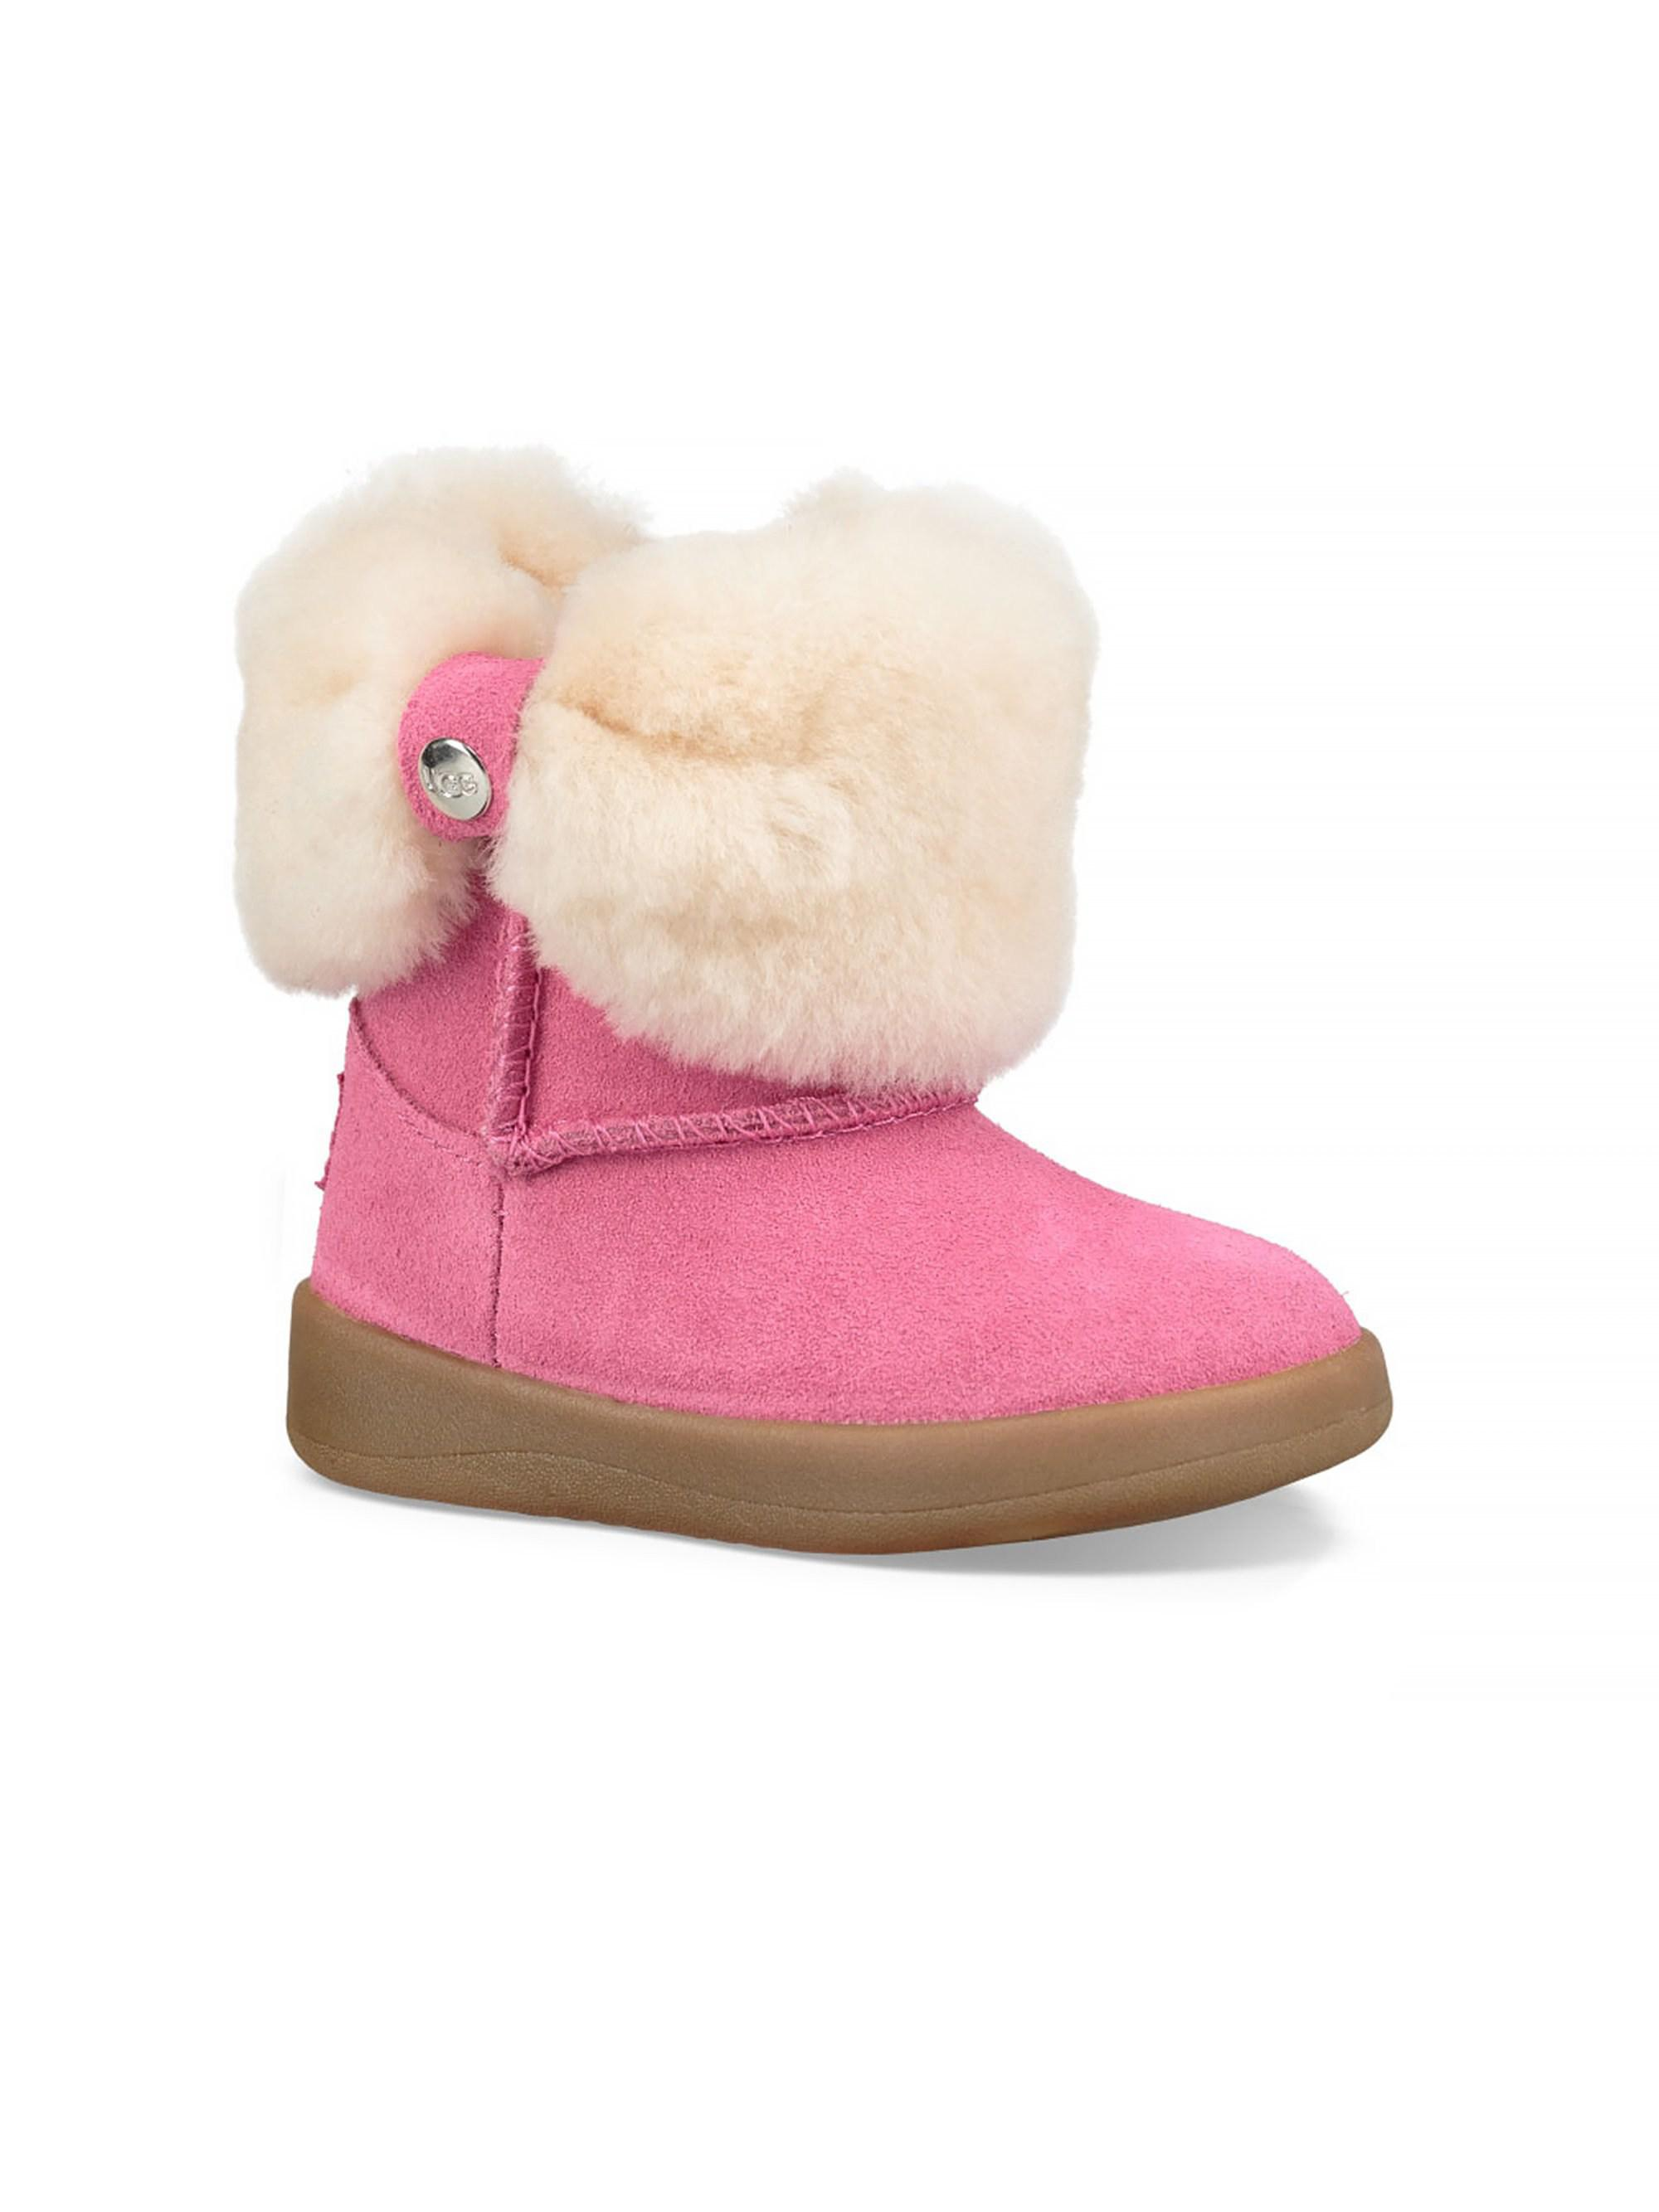 c7686f6407ef UGG Baby Girl s Ramona Suede Boot in Pink - Lyst